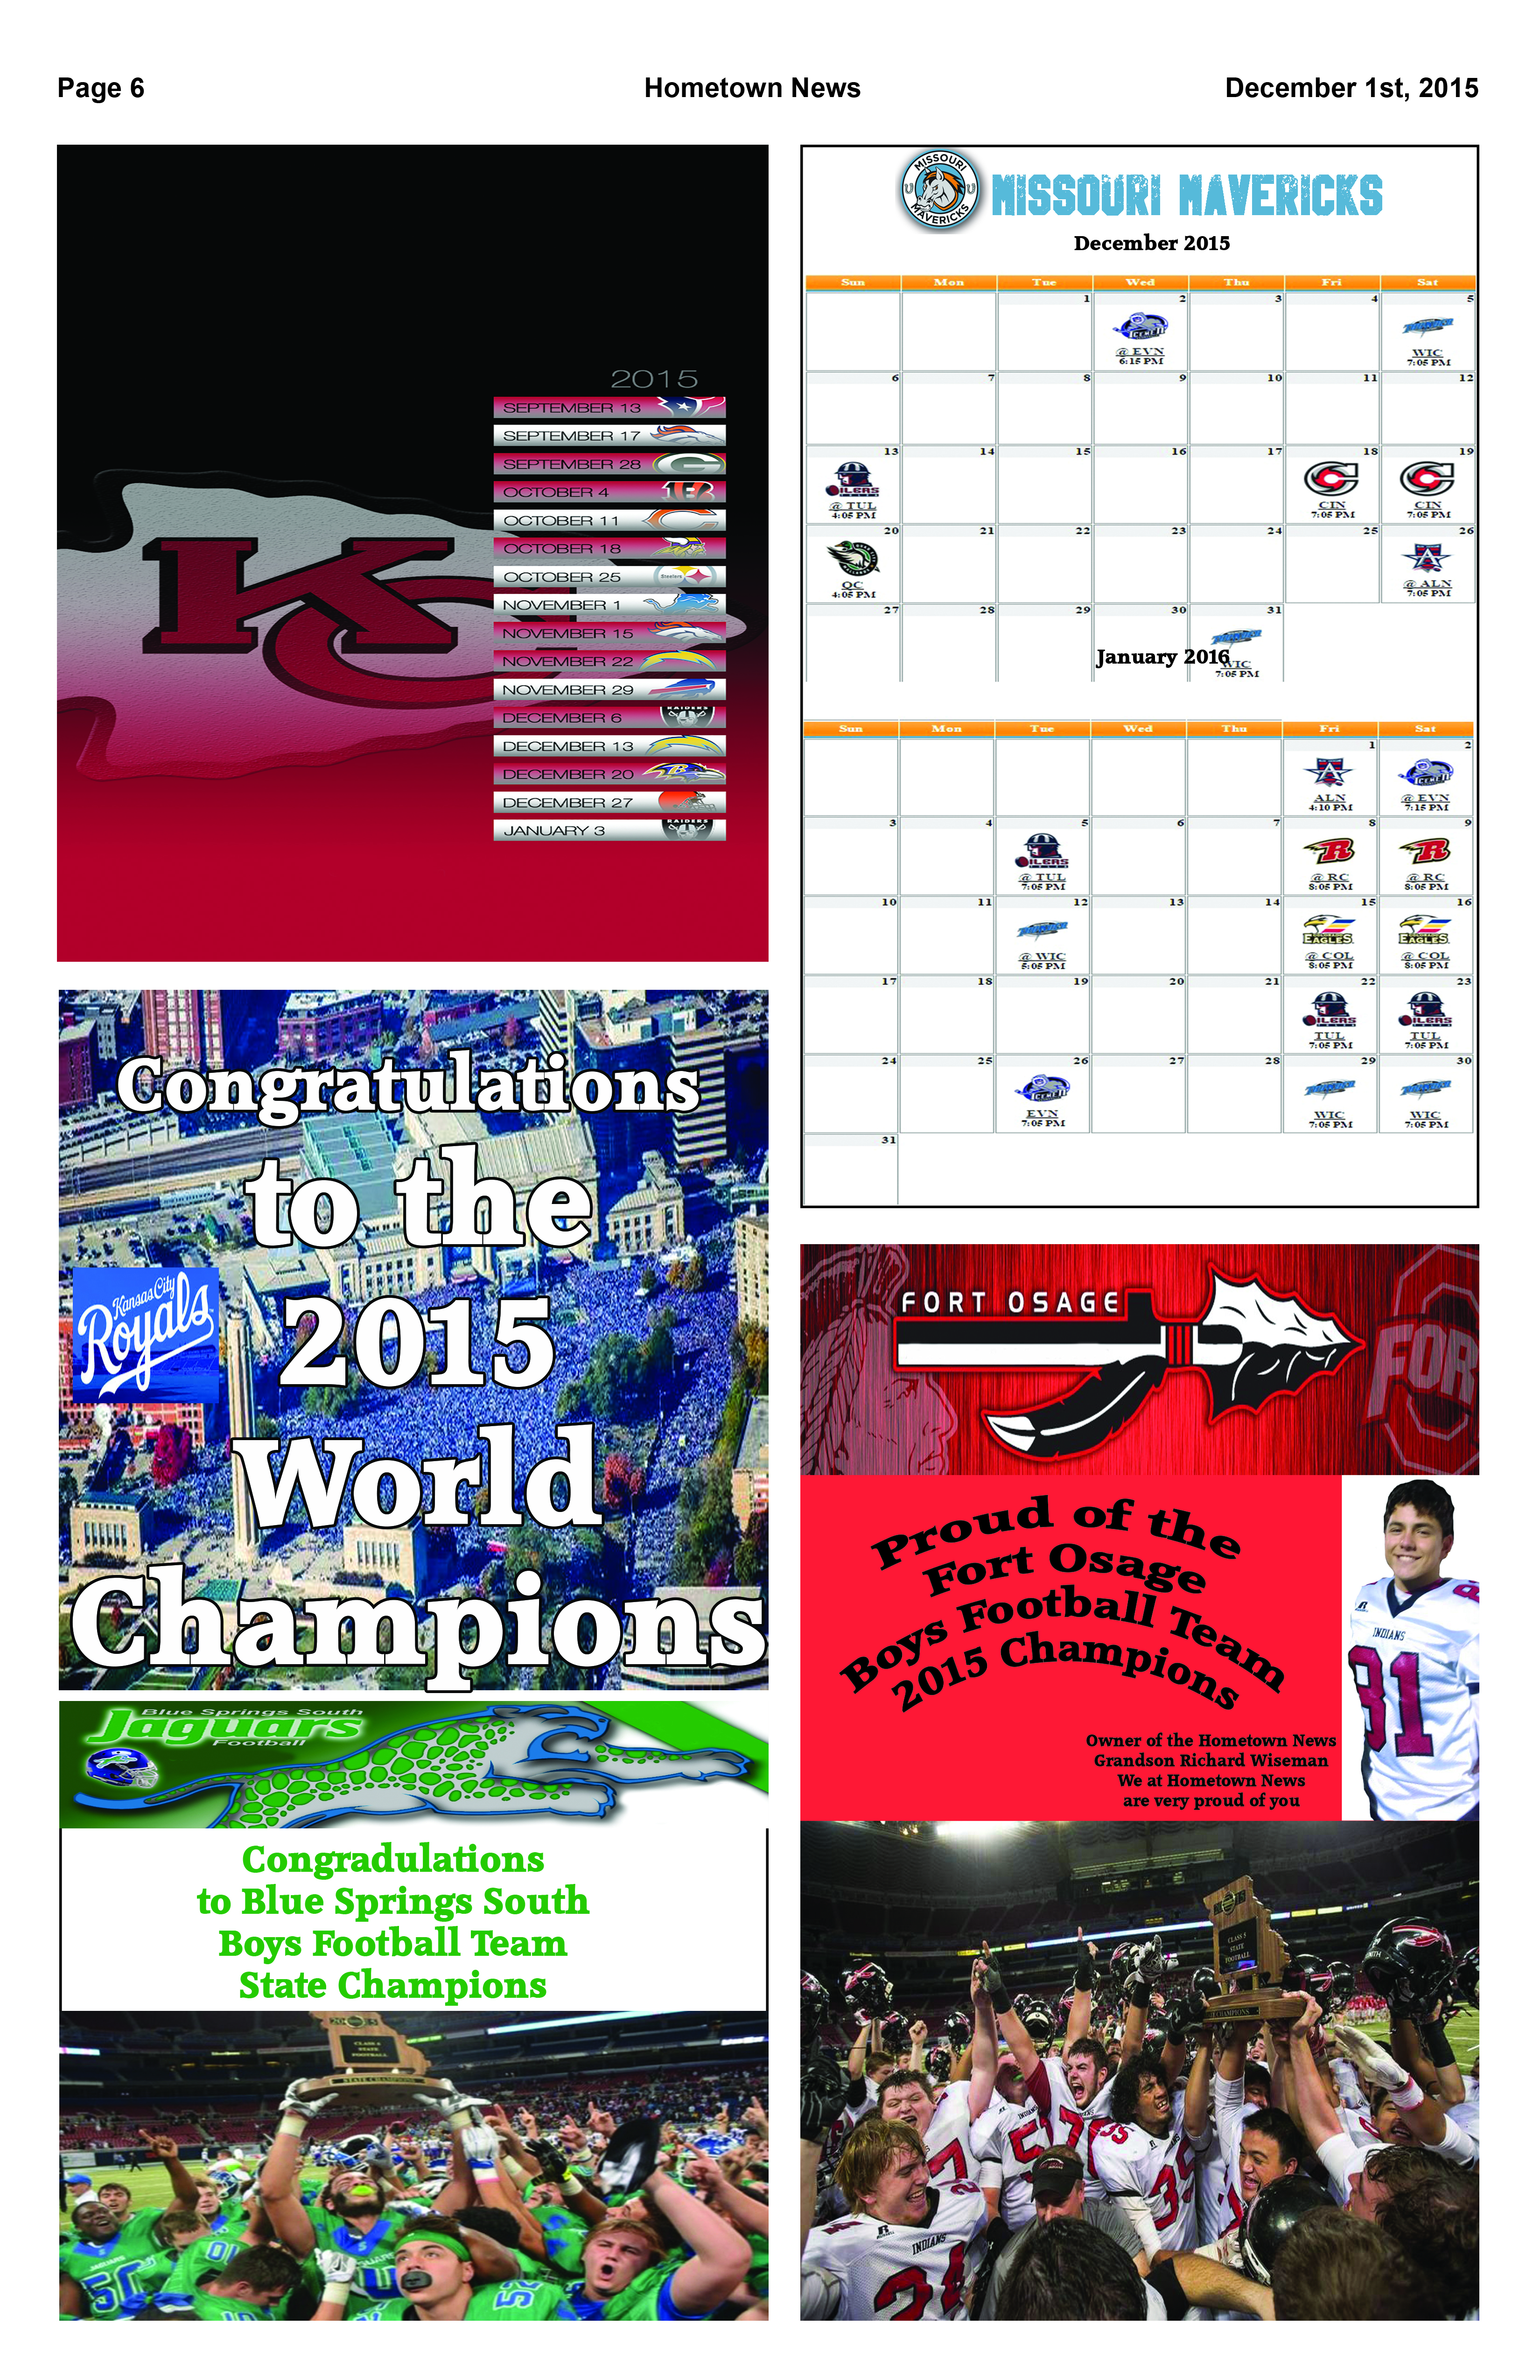 Page 6 Sports